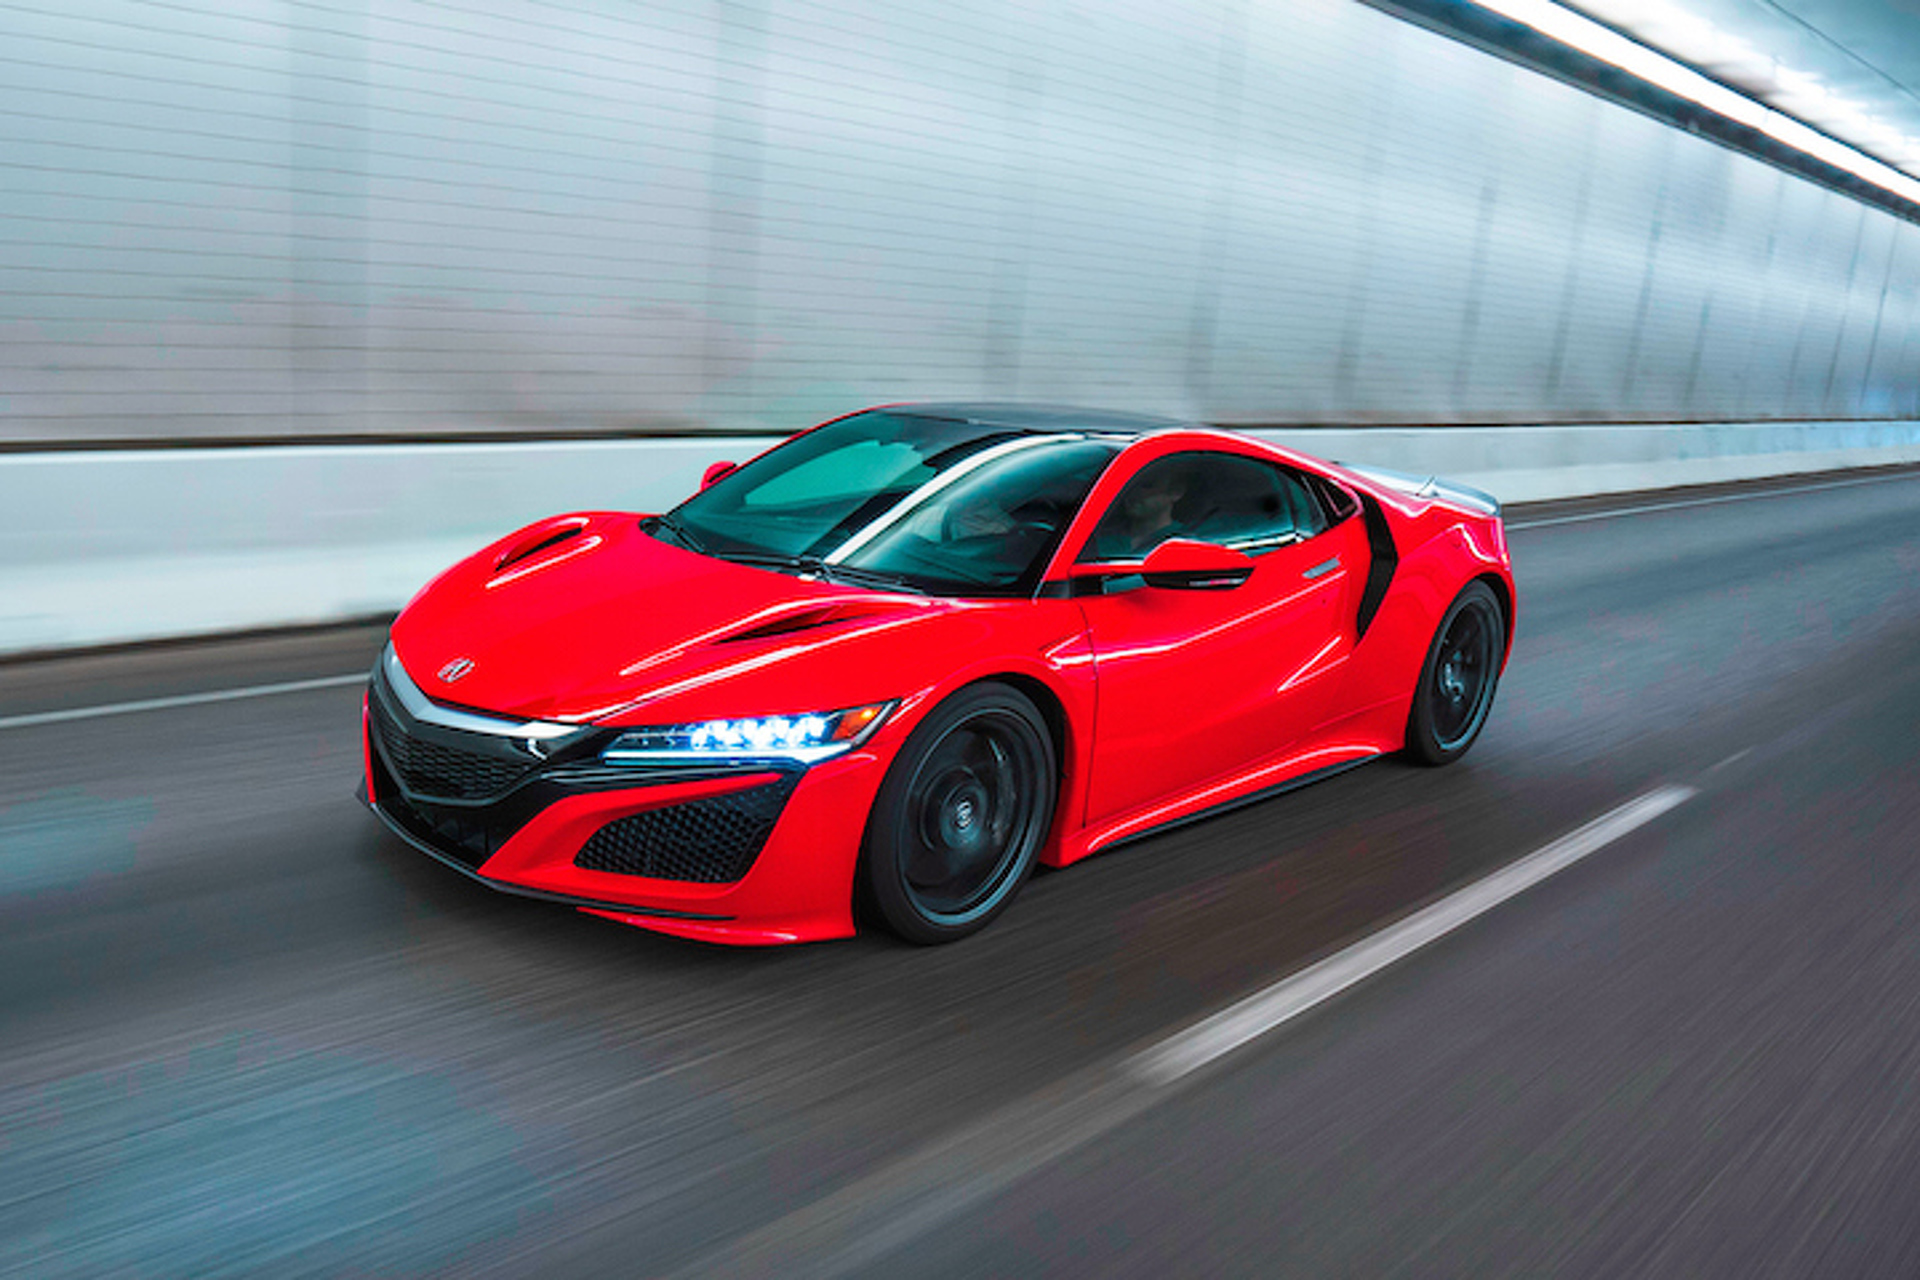 The Acura Nsx Supercar Could Get Even More Mental With Rear Wheel